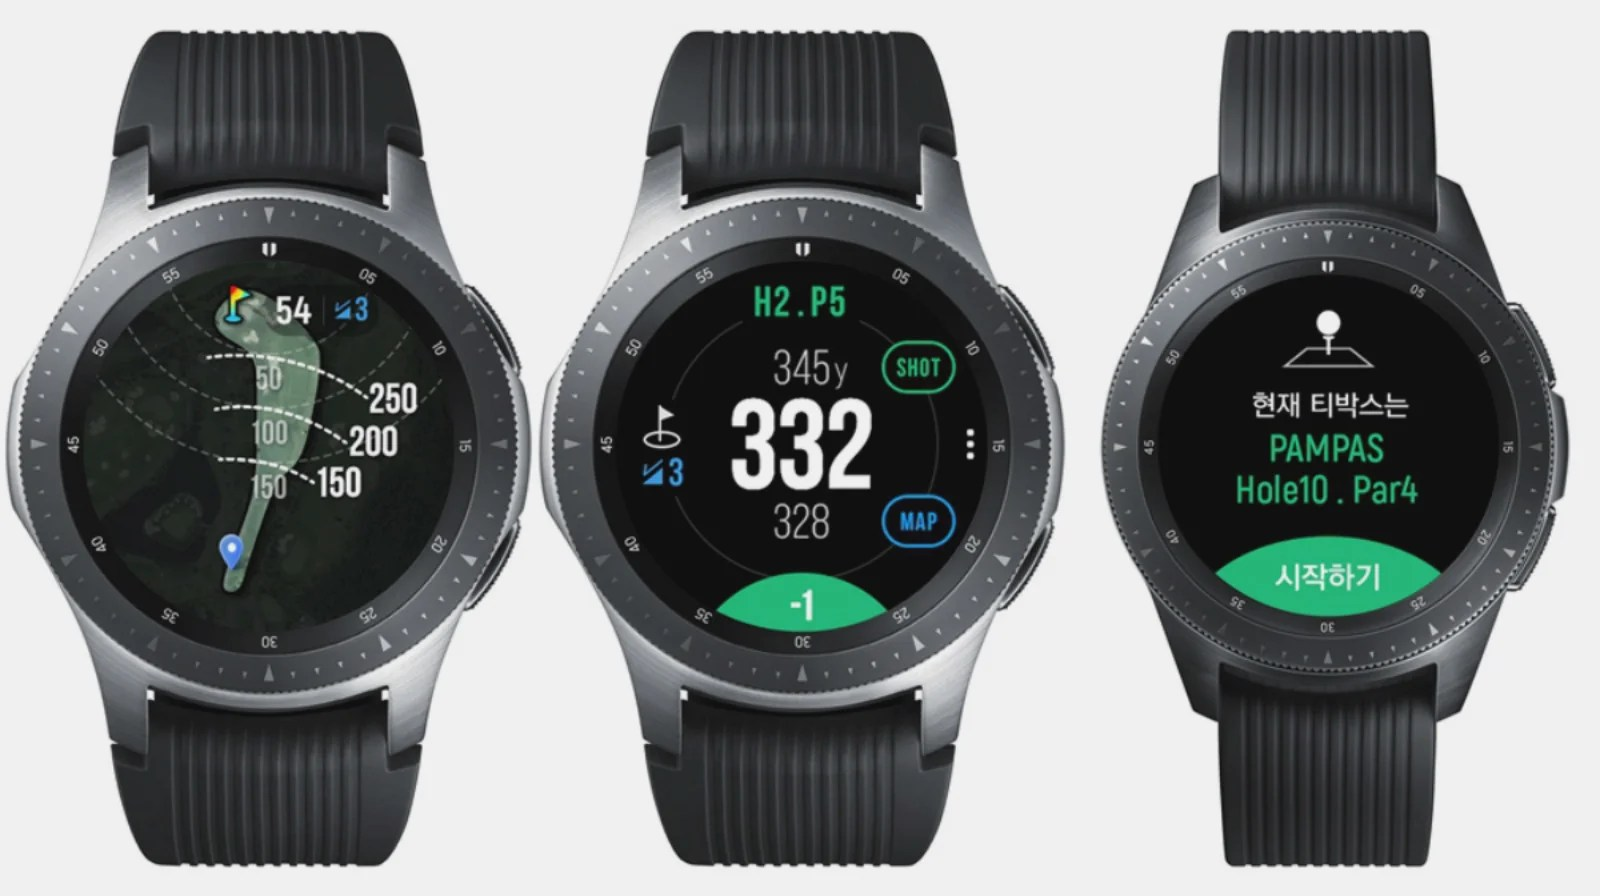 Sessel Extra Hoch Samsung Galaxy Watch Golf Edition Is Here But It S A Double Bogey